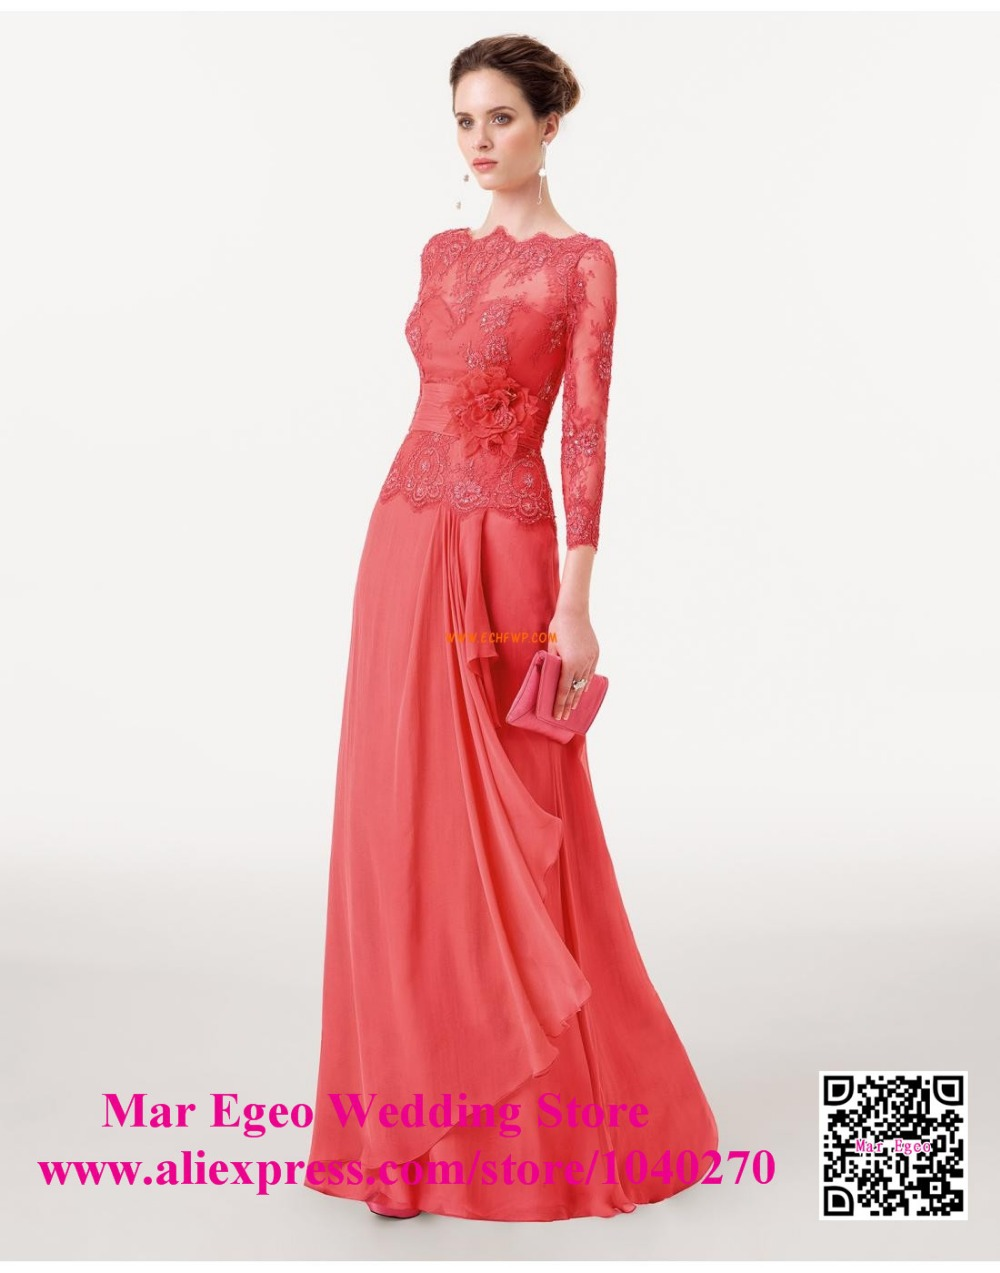 Coral mother of the bride lace dresses with flower pant for Boda en jardin vestidos